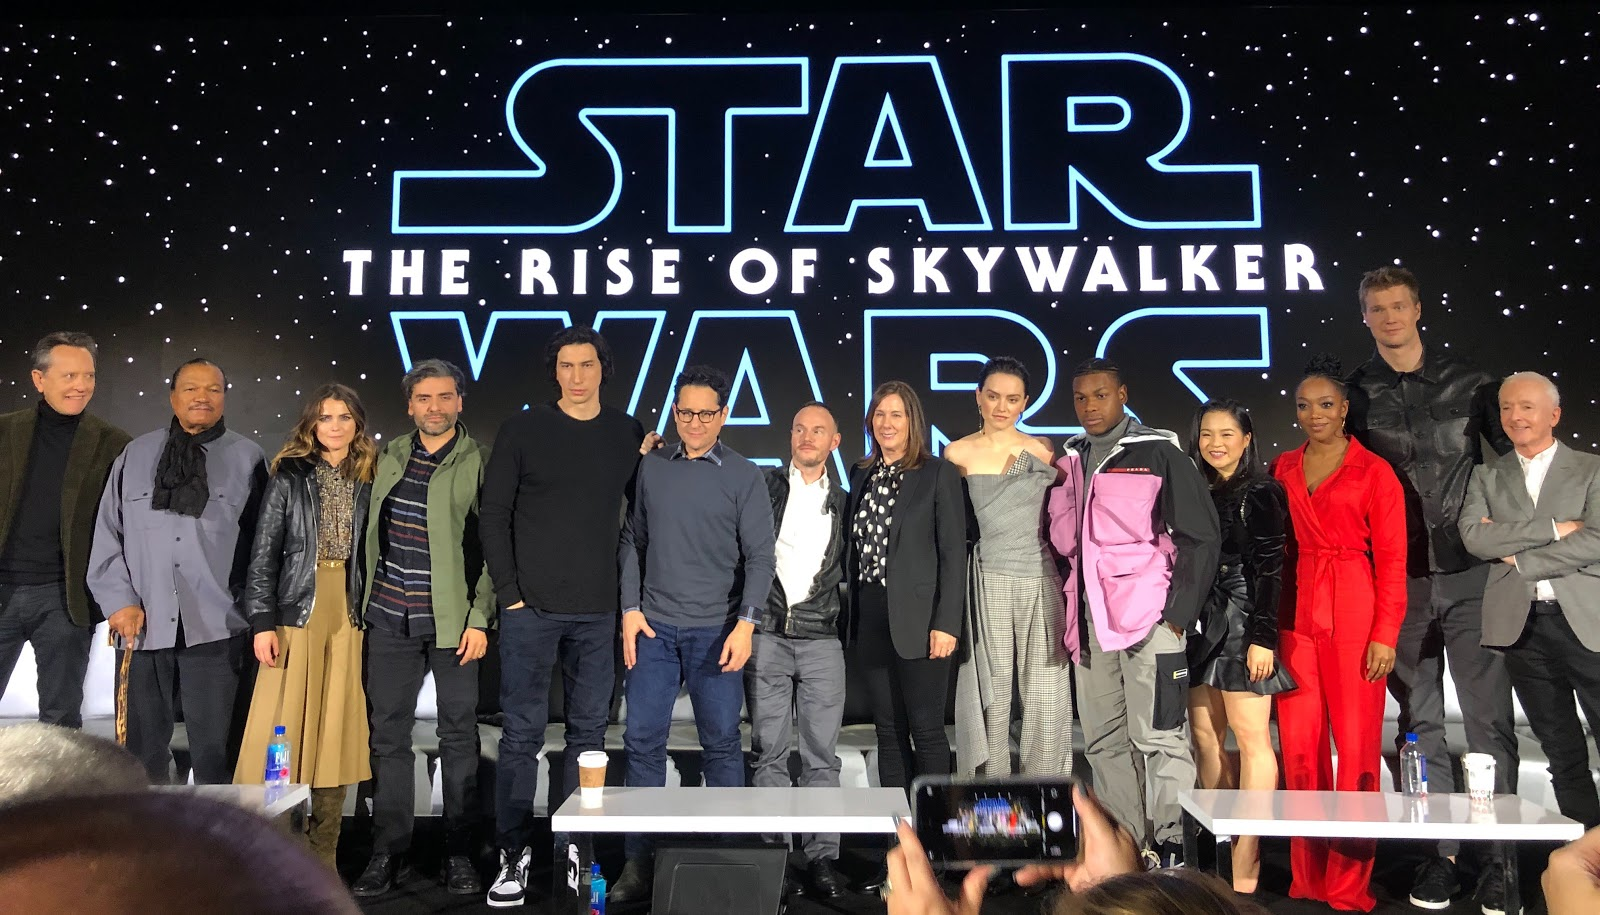 Video Star Wars The Rise Of Skywalker Cast Creative Team Unite For Global Press Conference Laughingplace Com